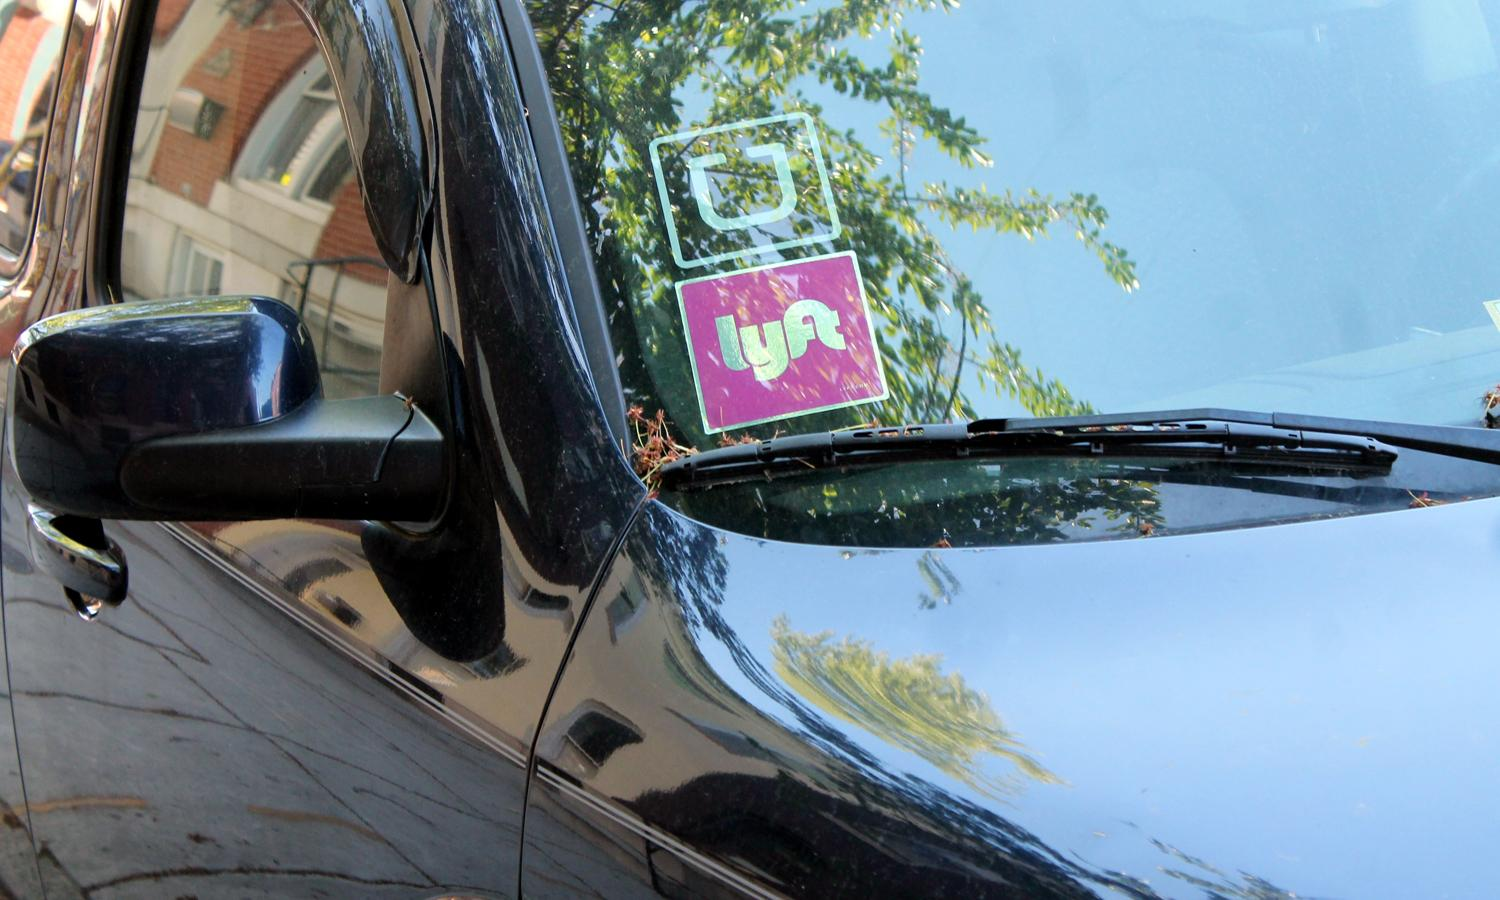 Uber and Lyft stickers in a car window